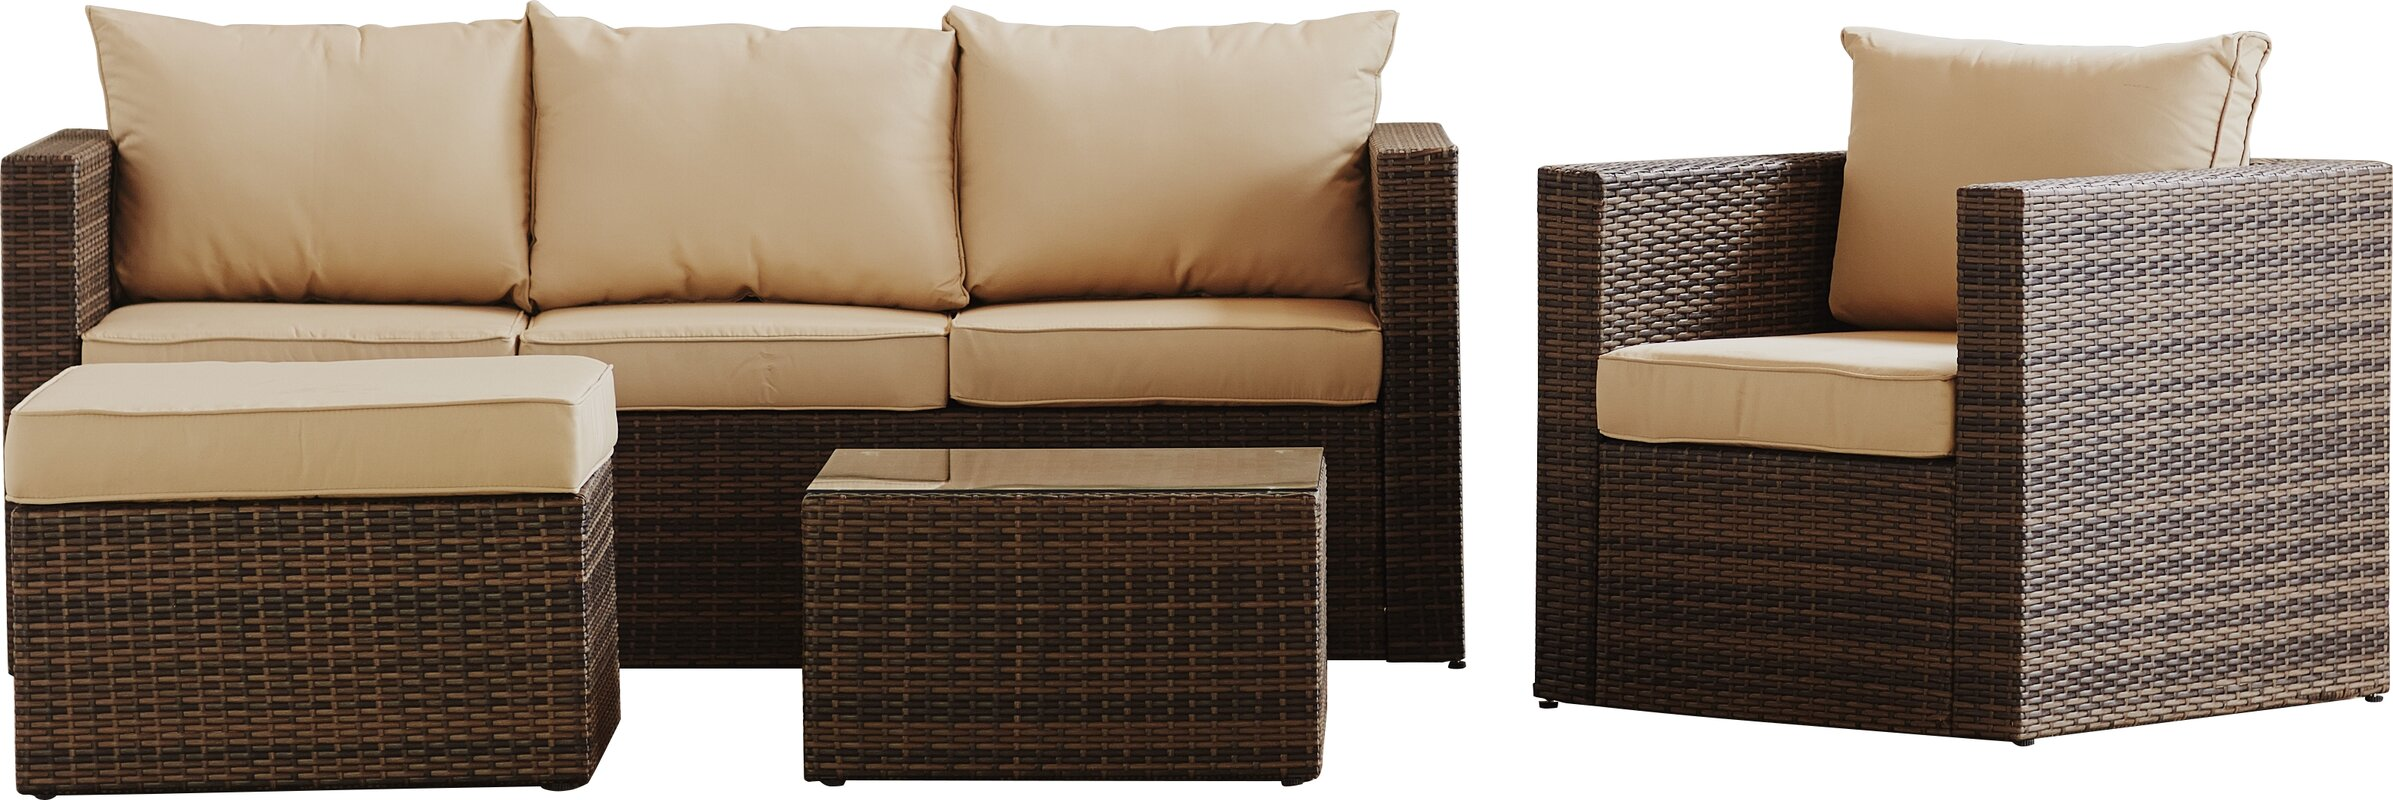 Mercury Row Rister 4 Piece Sectional Set with Cushions & Reviews ...